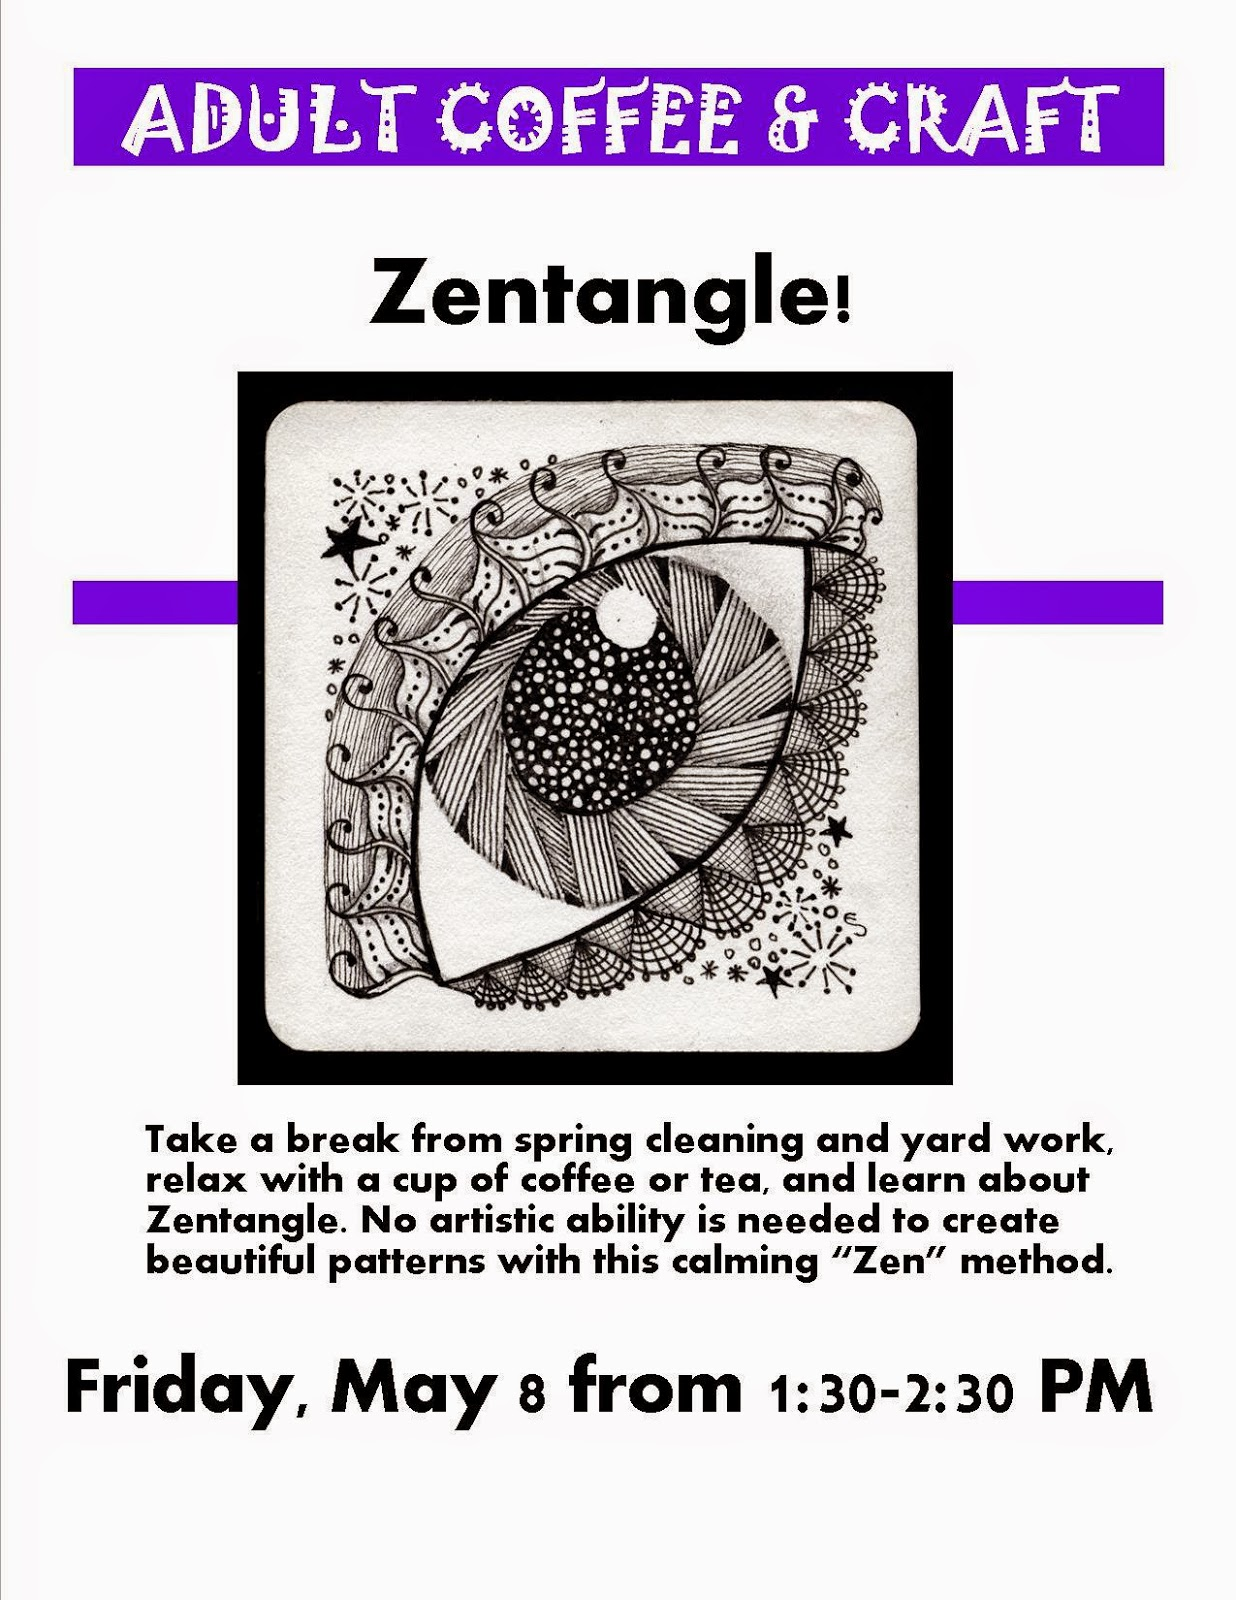 Zentangle for the coffee and craft today at 1:30